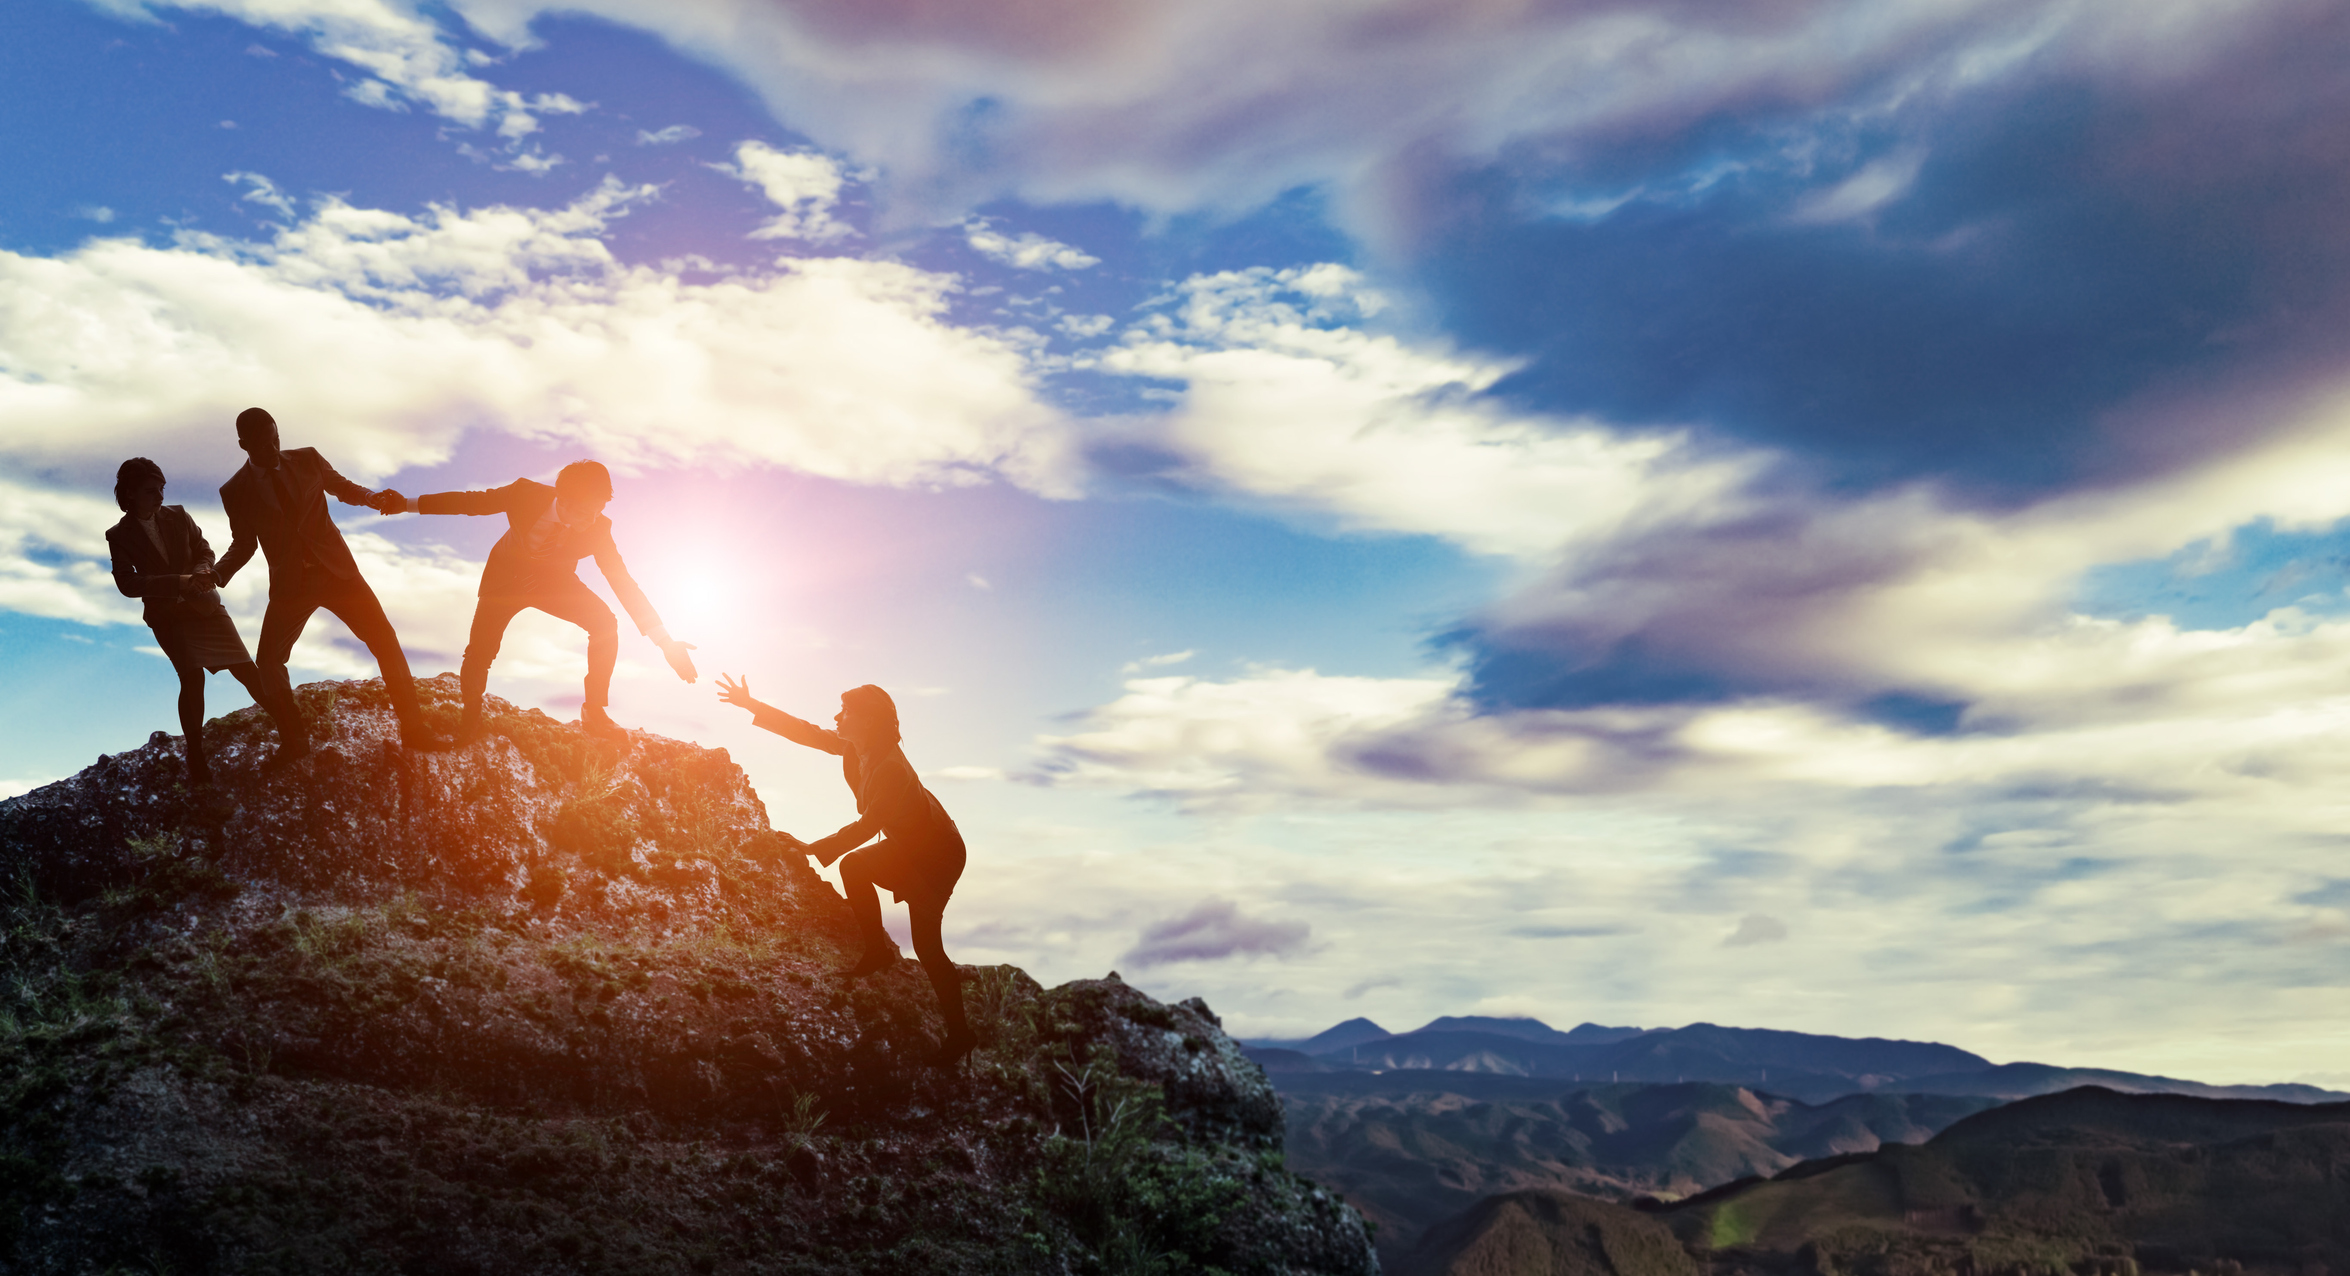 7 Steps to Ensure You're Valuing Your Team as You Pursue Your Vision